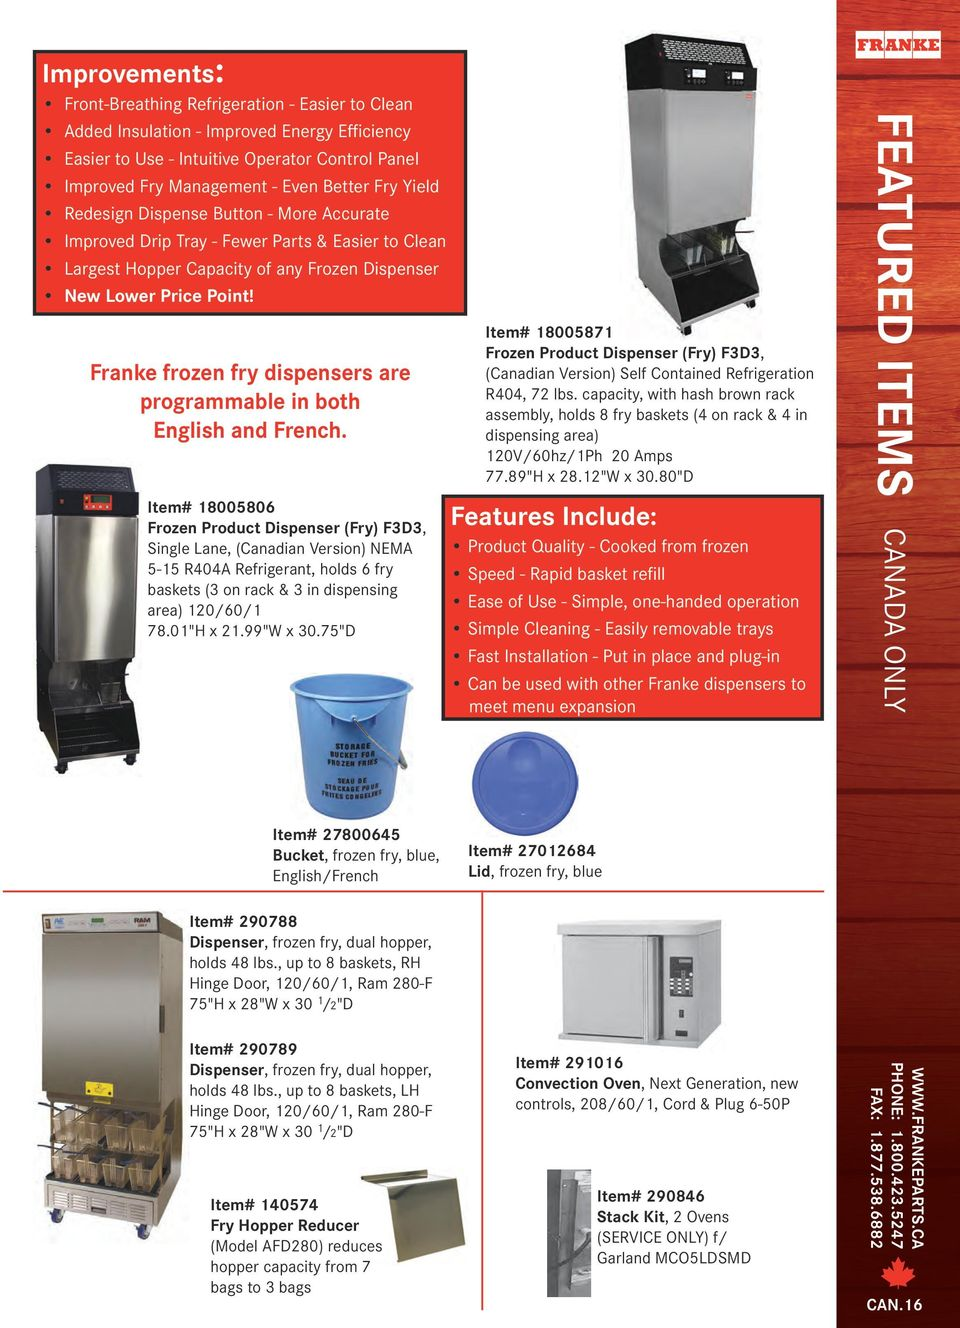 Franke frozen fry dispensers are programmable in both English and French.